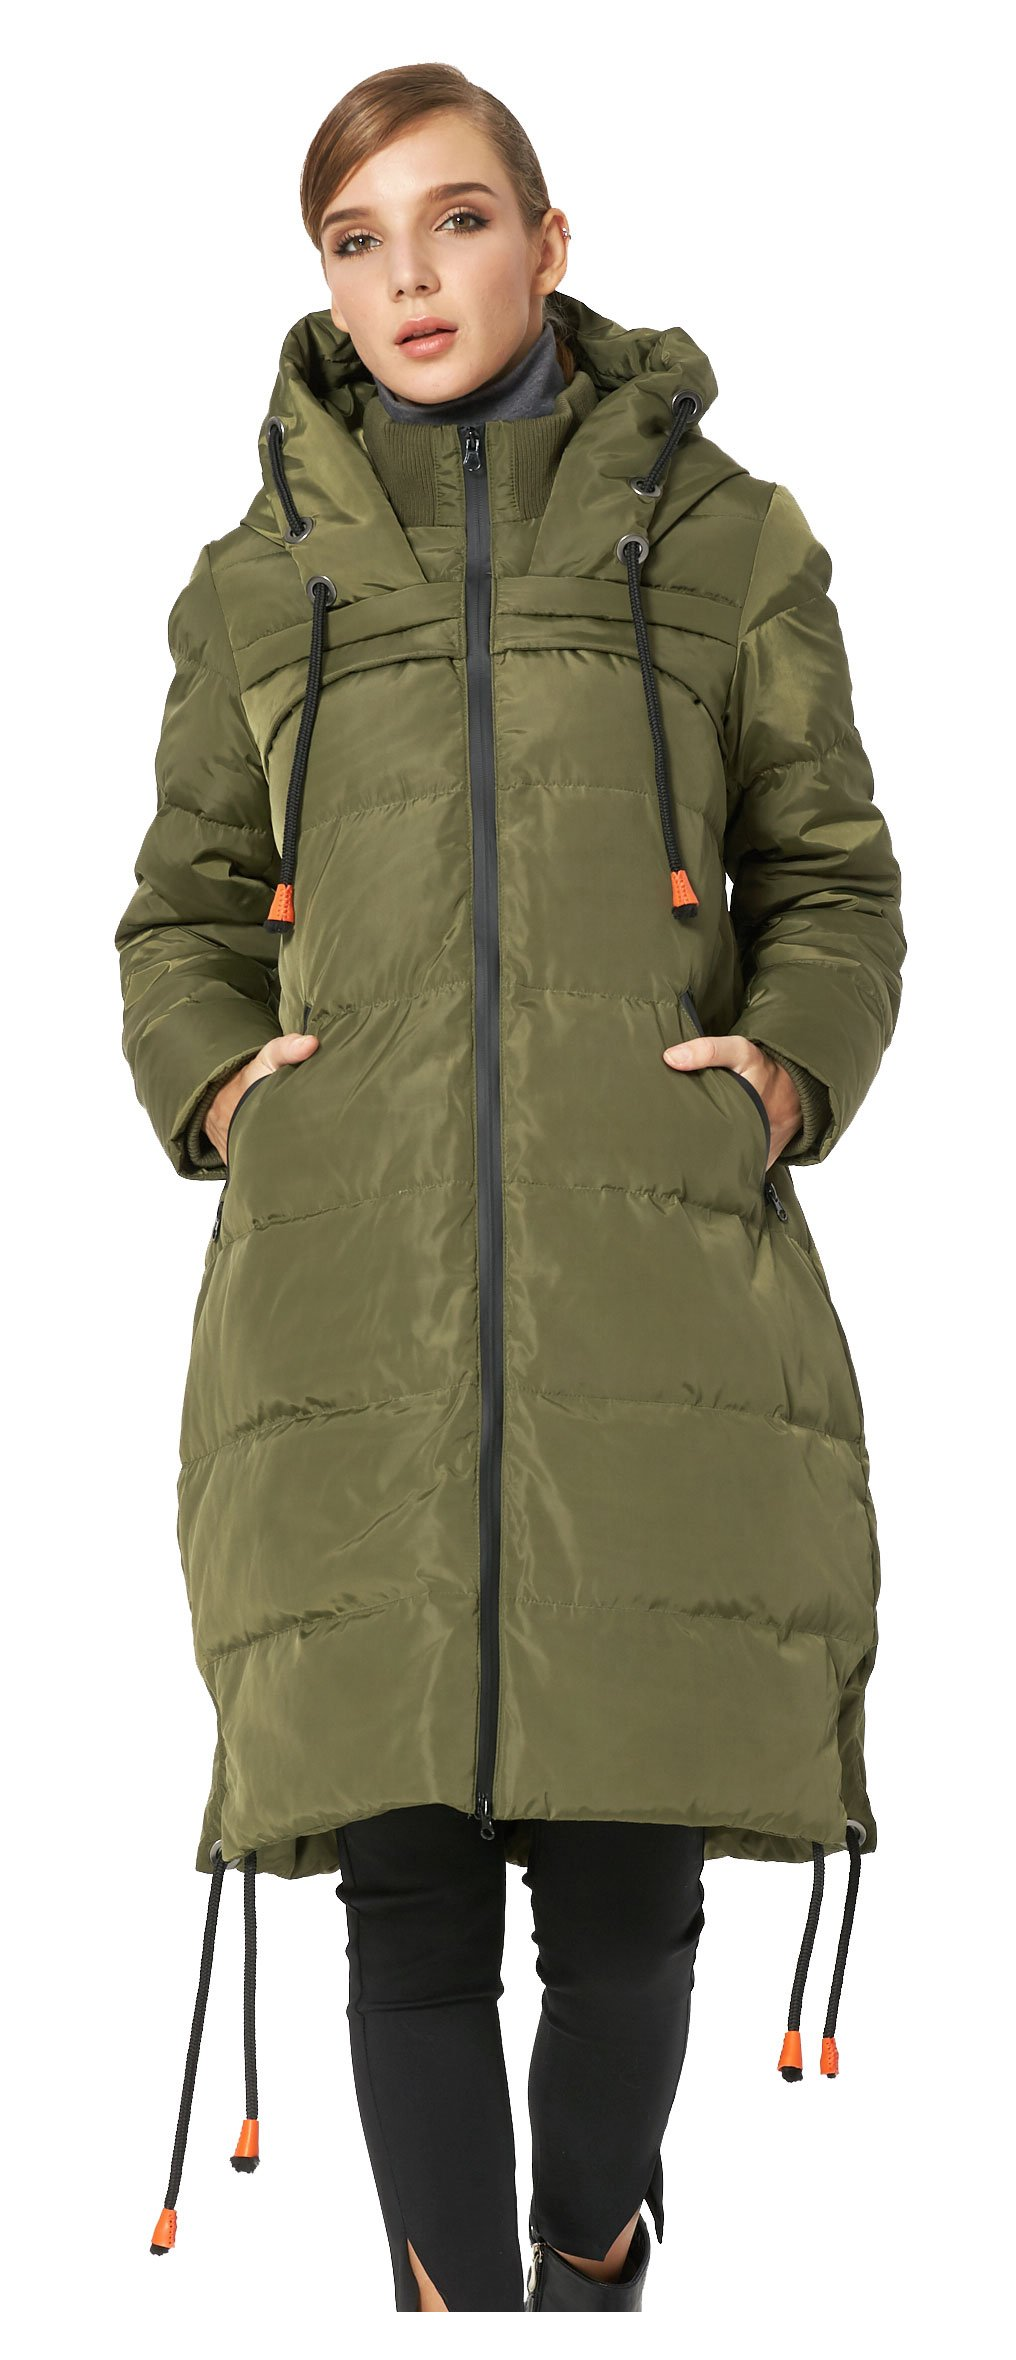 Orolay Women's Thickened Contrast Color Drawstring Down Jacket Hooded ArmyGreen S